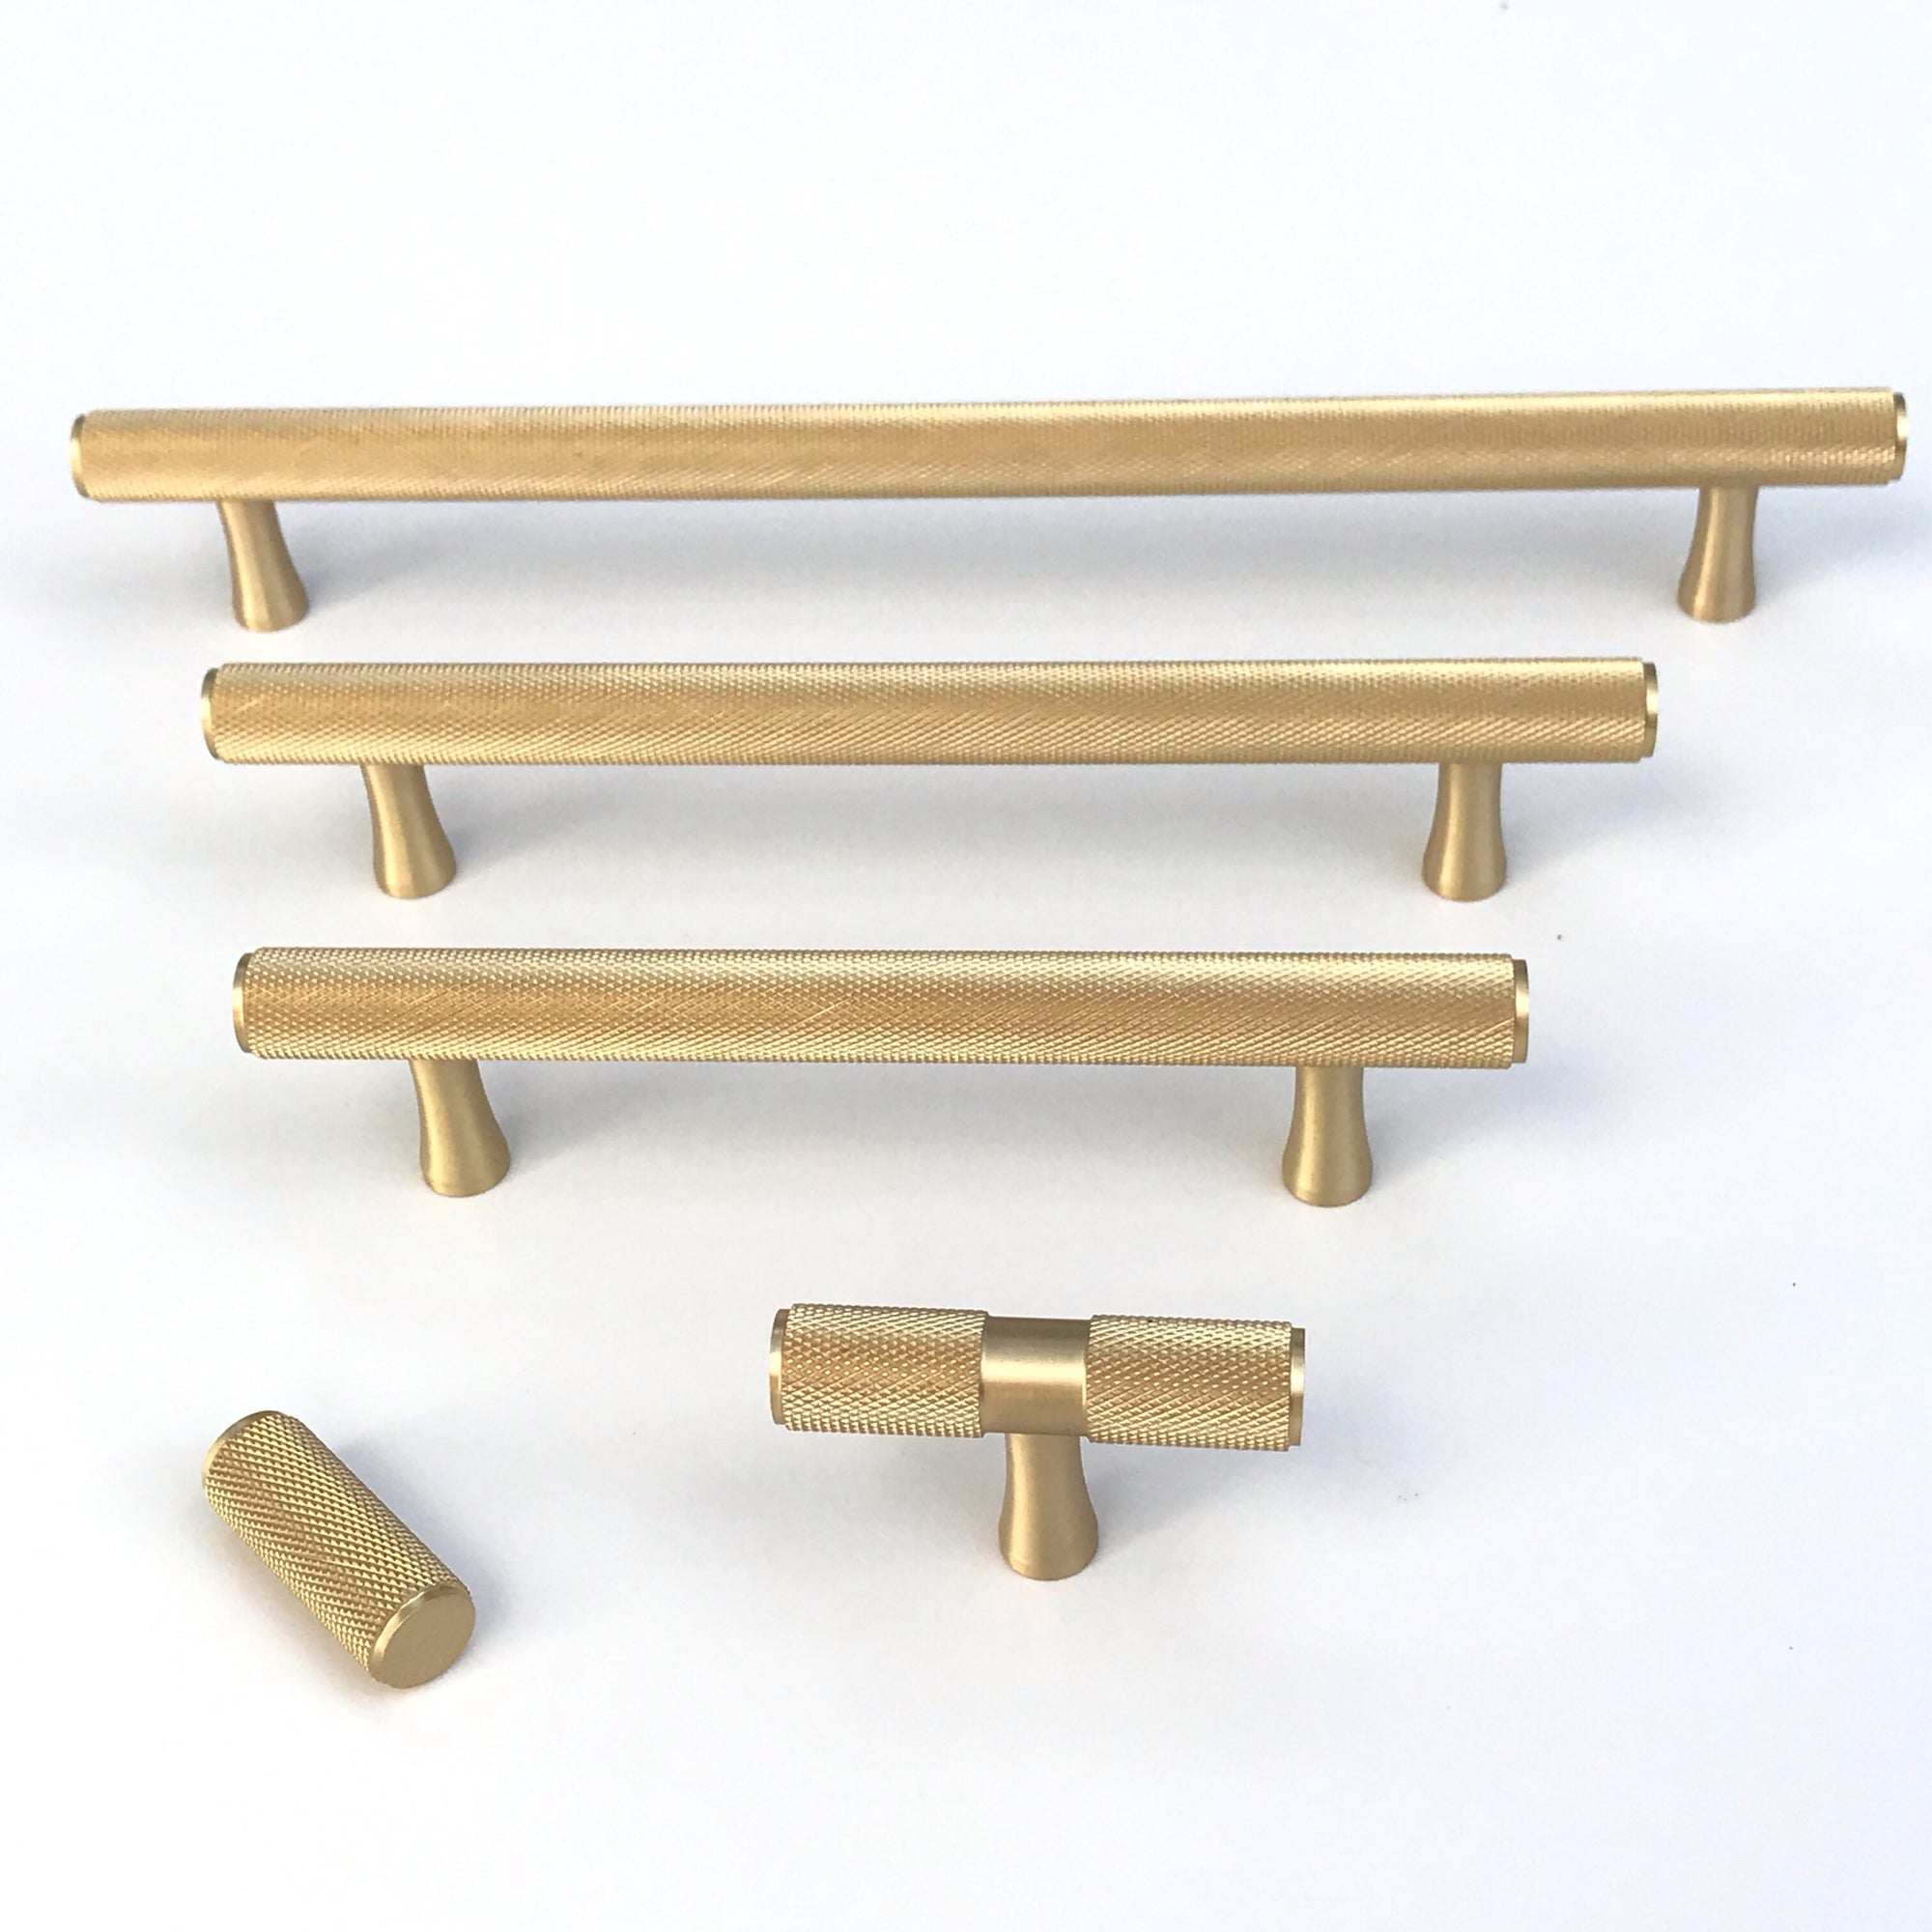 Brass Solid Texture Knurled Drawer Pulls And Knobs In Satin Brass Forge Hardware Studio